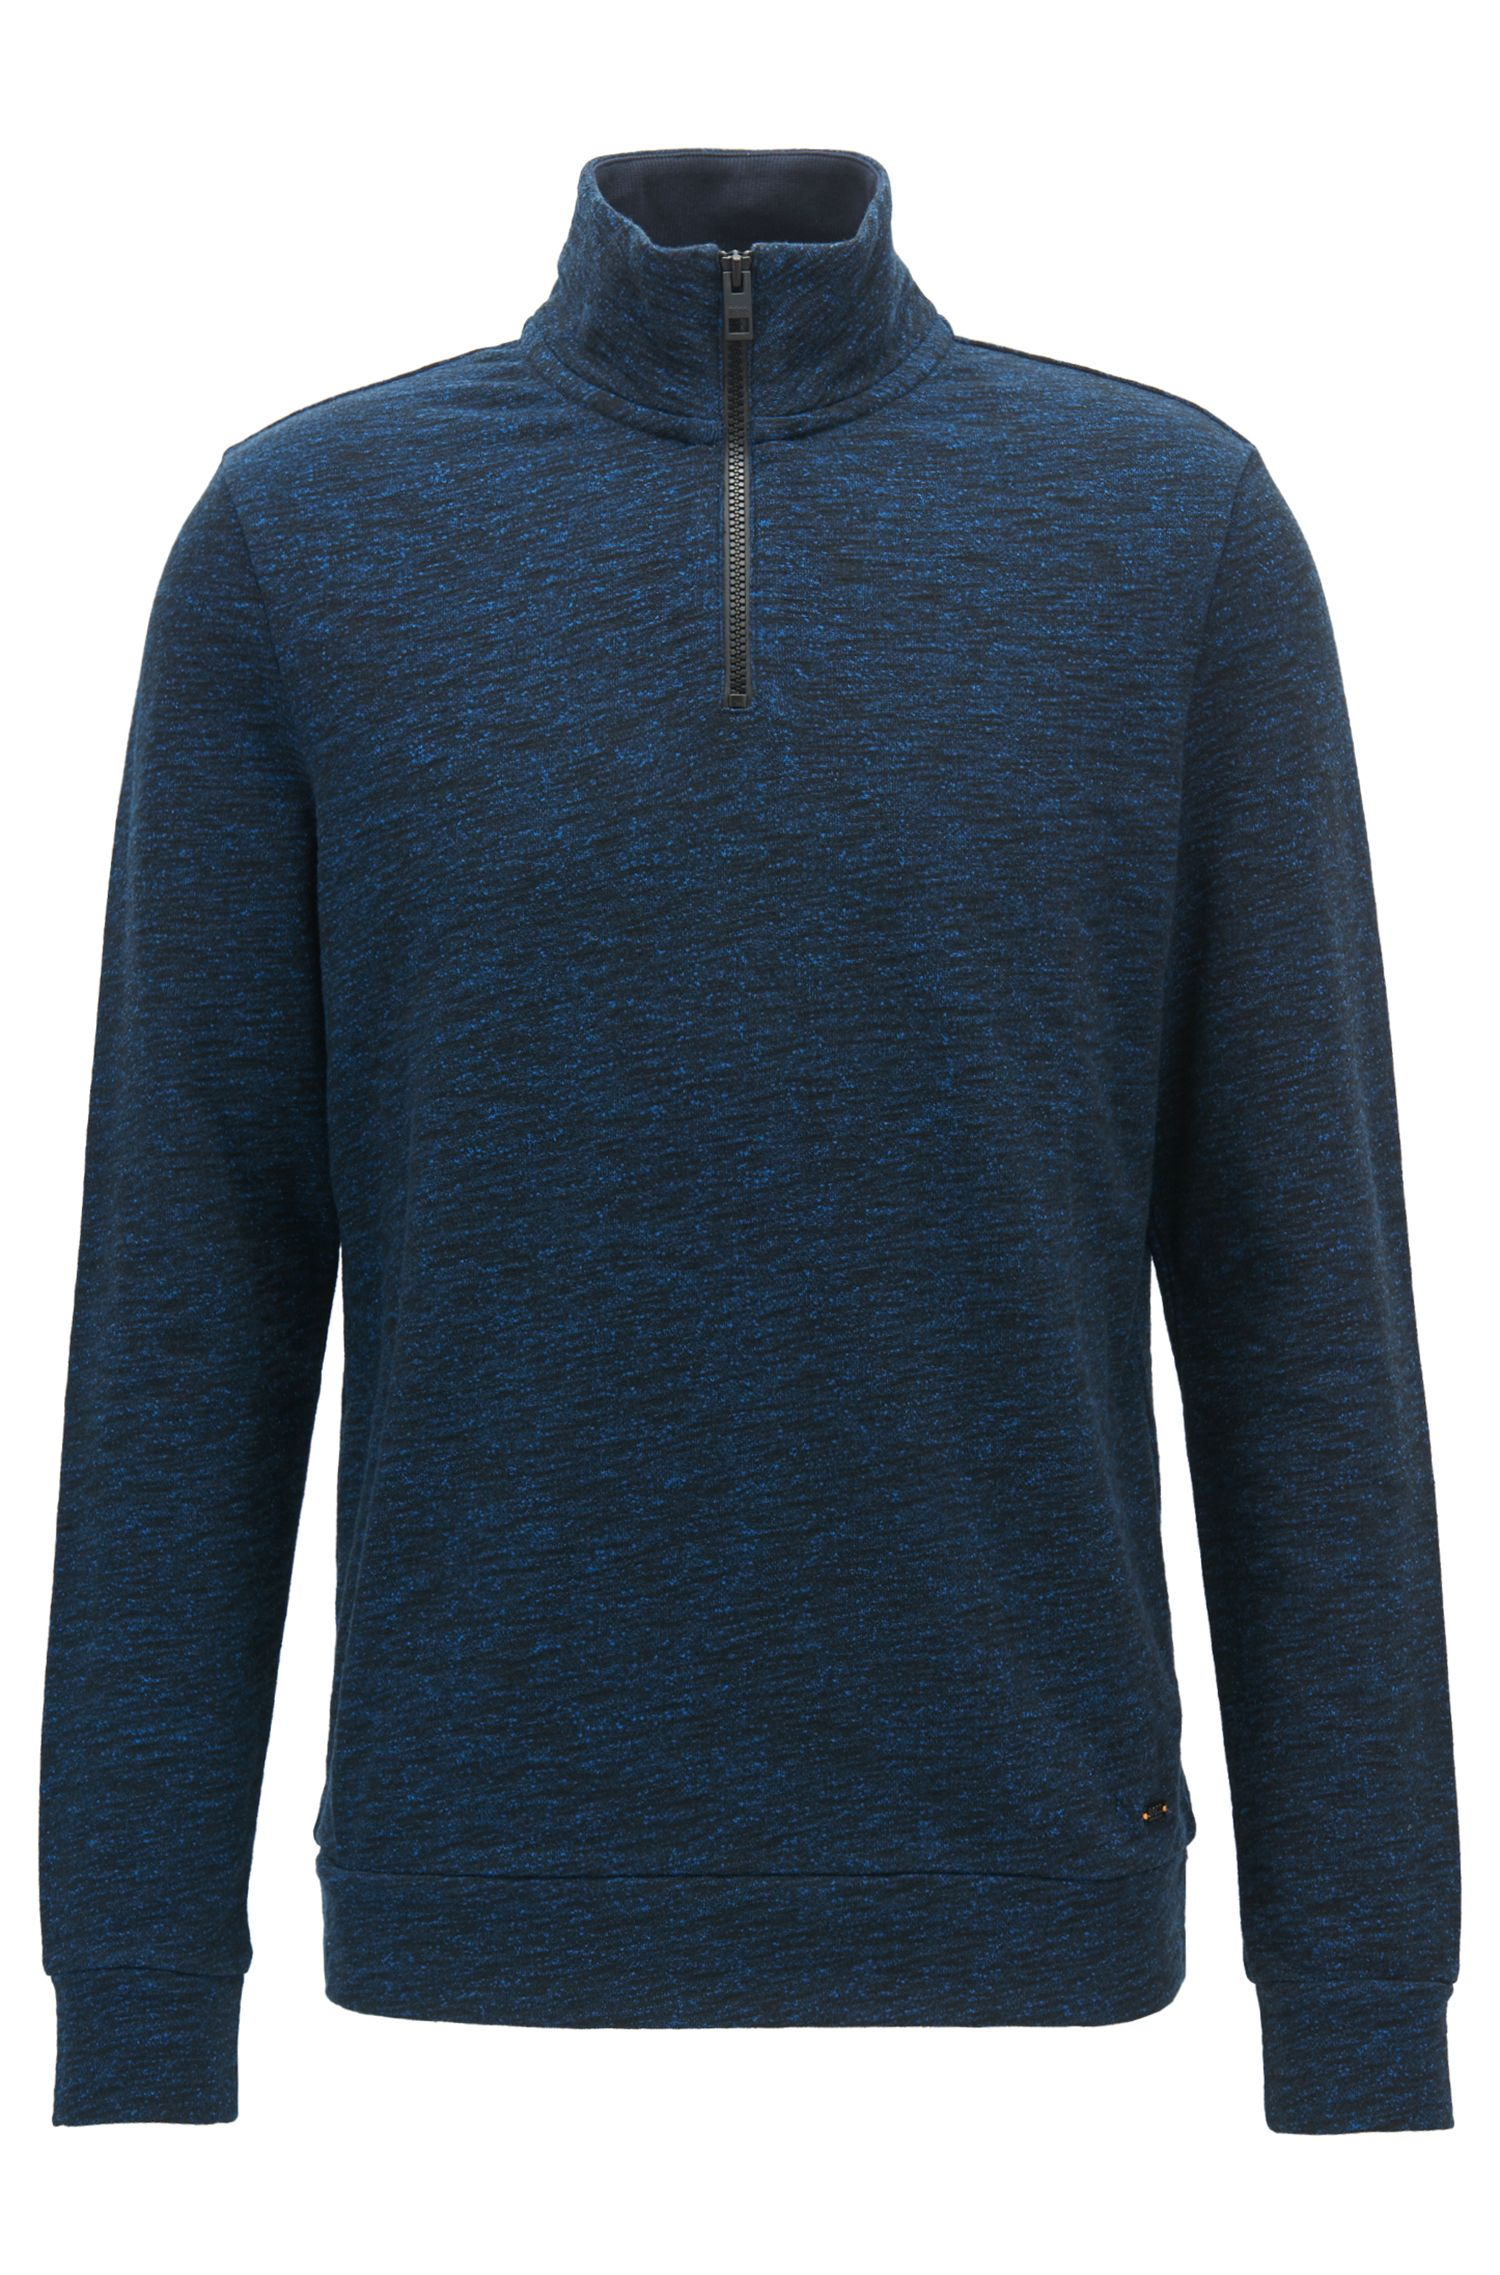 Zip-neck sweater in a heathered cotton blend